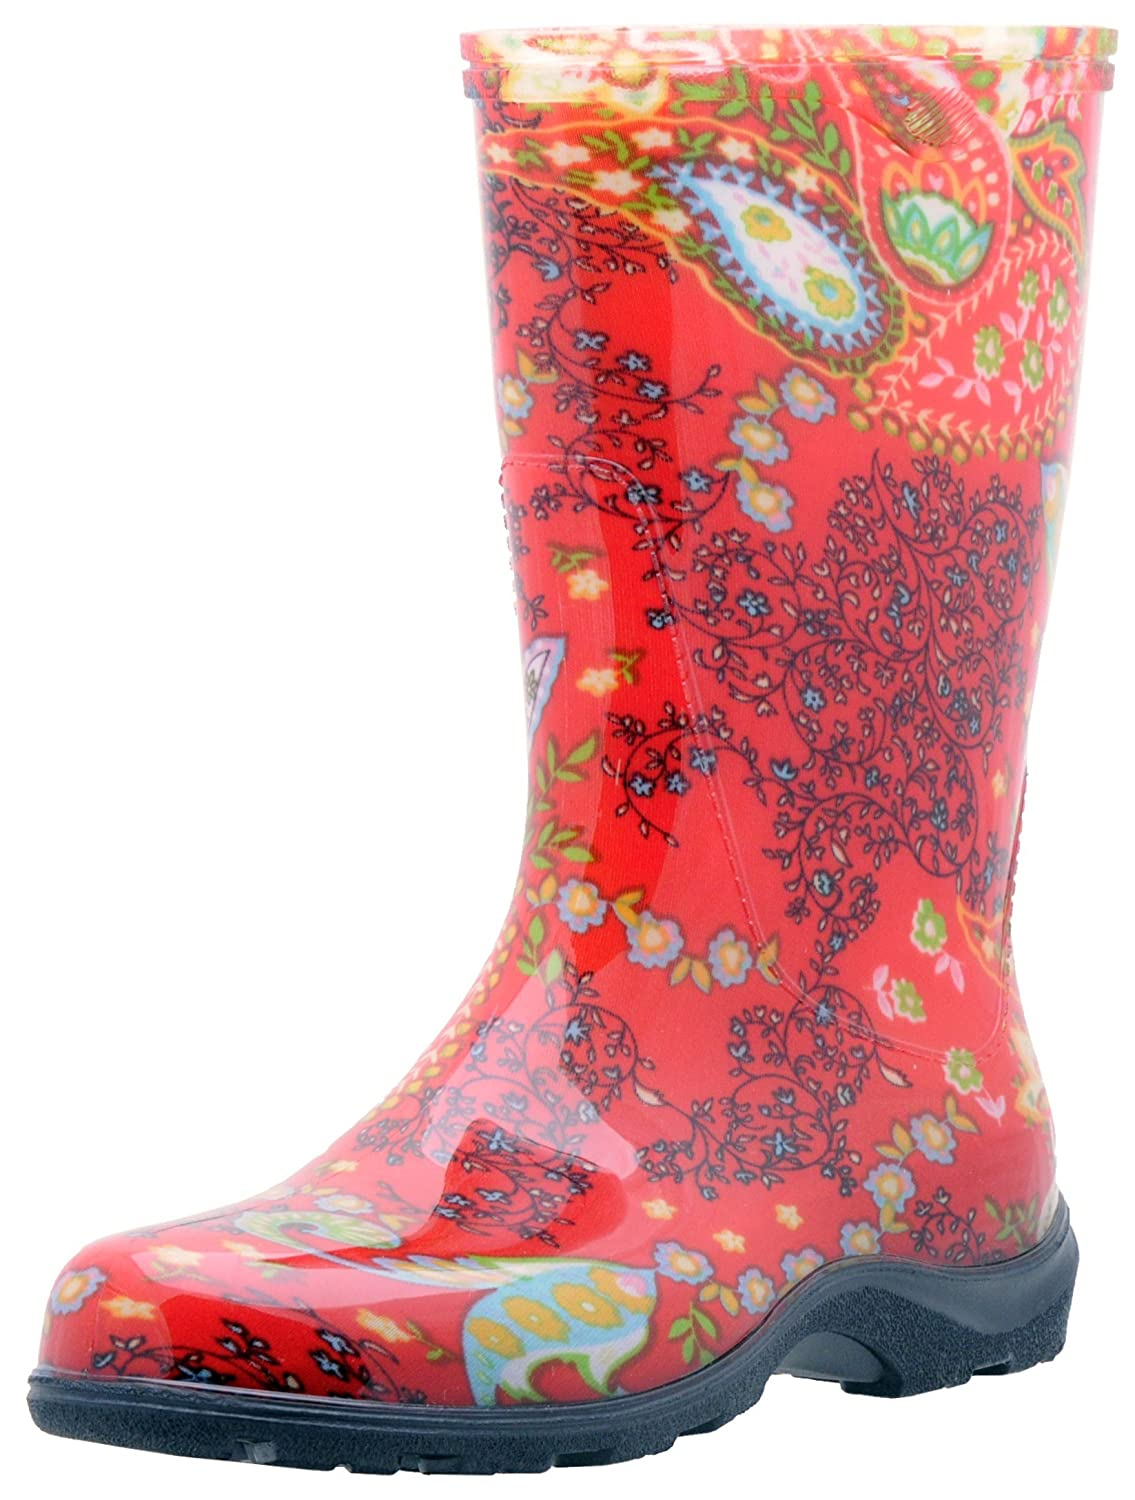 garden boots womens. Amazon.com: Sloggers Women\u0027s Waterproof Rain And Garden Boot With Comfort Insole, Paisley Red, Size 9, Style 5004RD09: PRINCIPLE PLASTICS: \u0026 Outdoor Boots Womens N